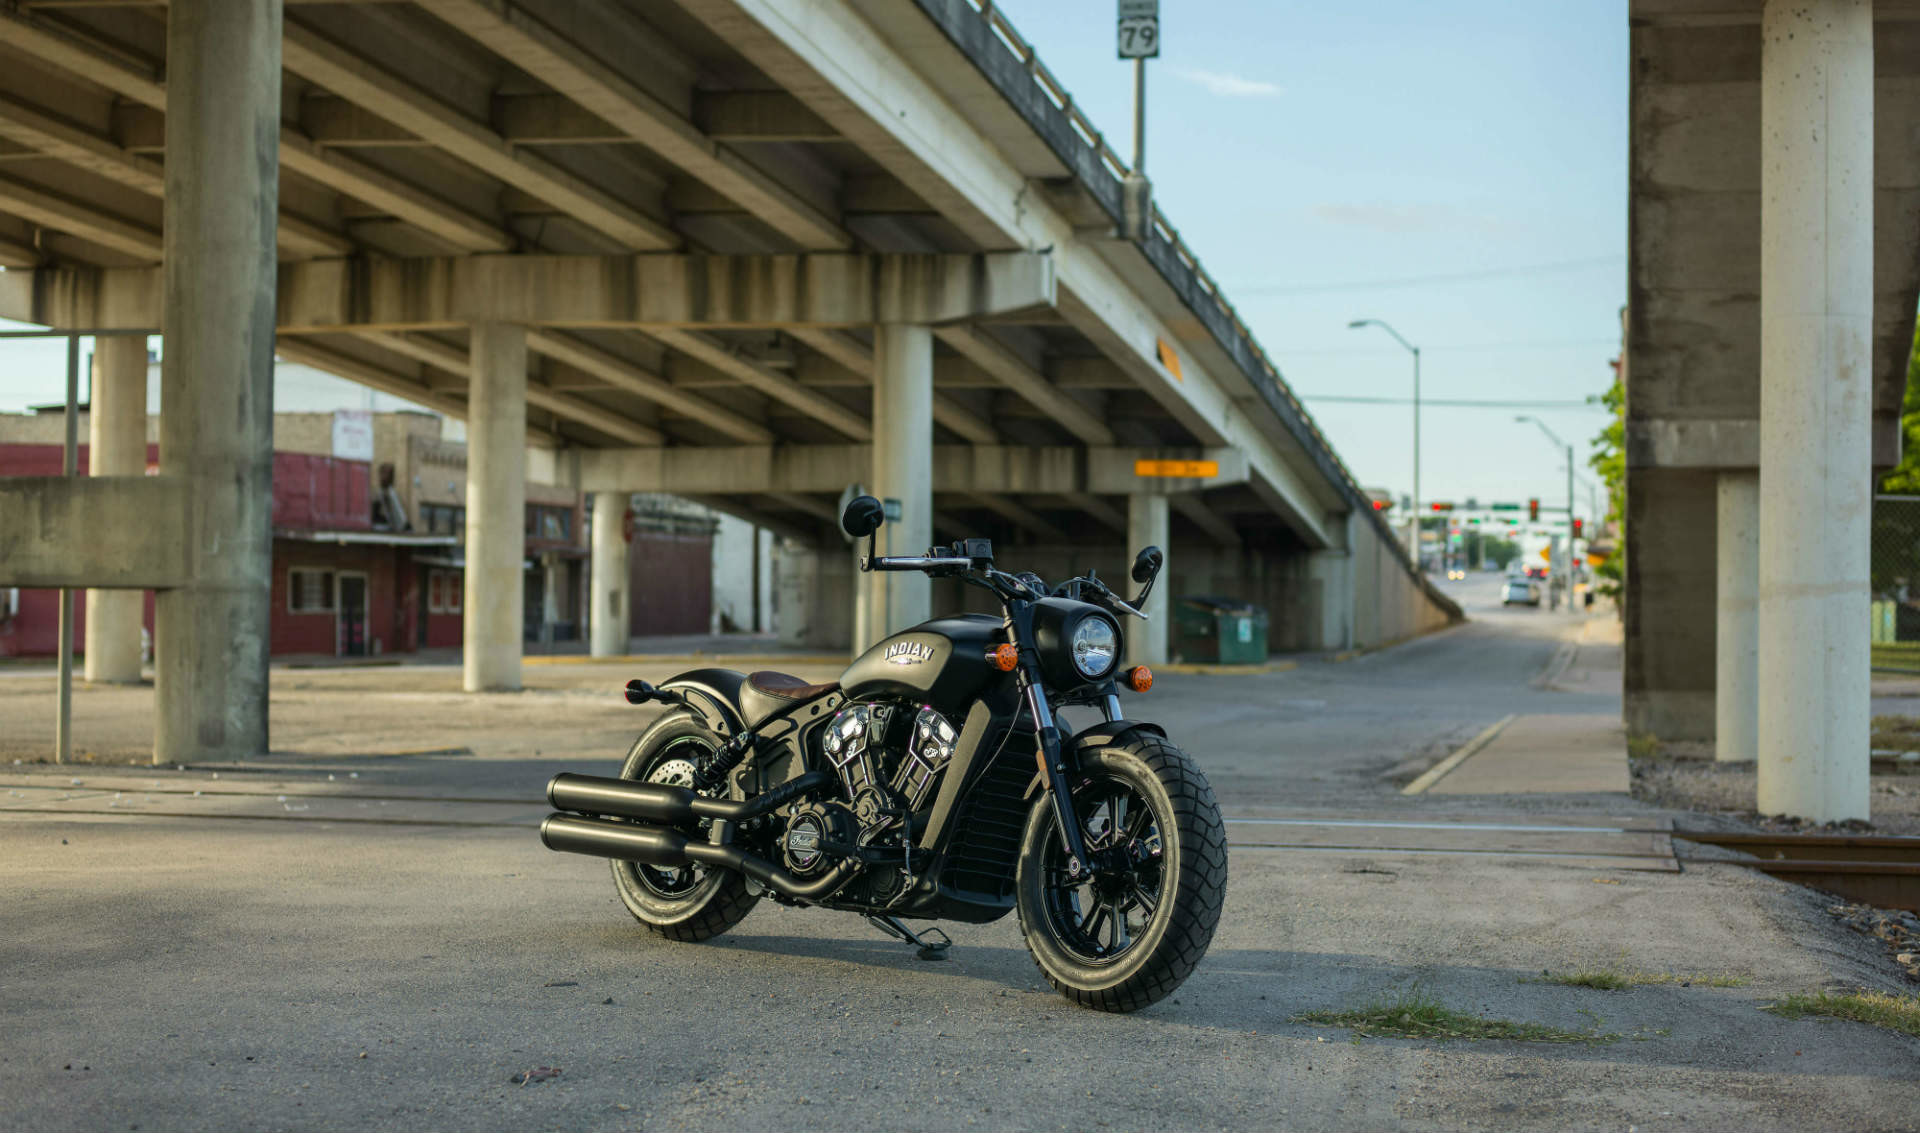 Res: 1920x1133, Check Indian Scout Bobber Black HD